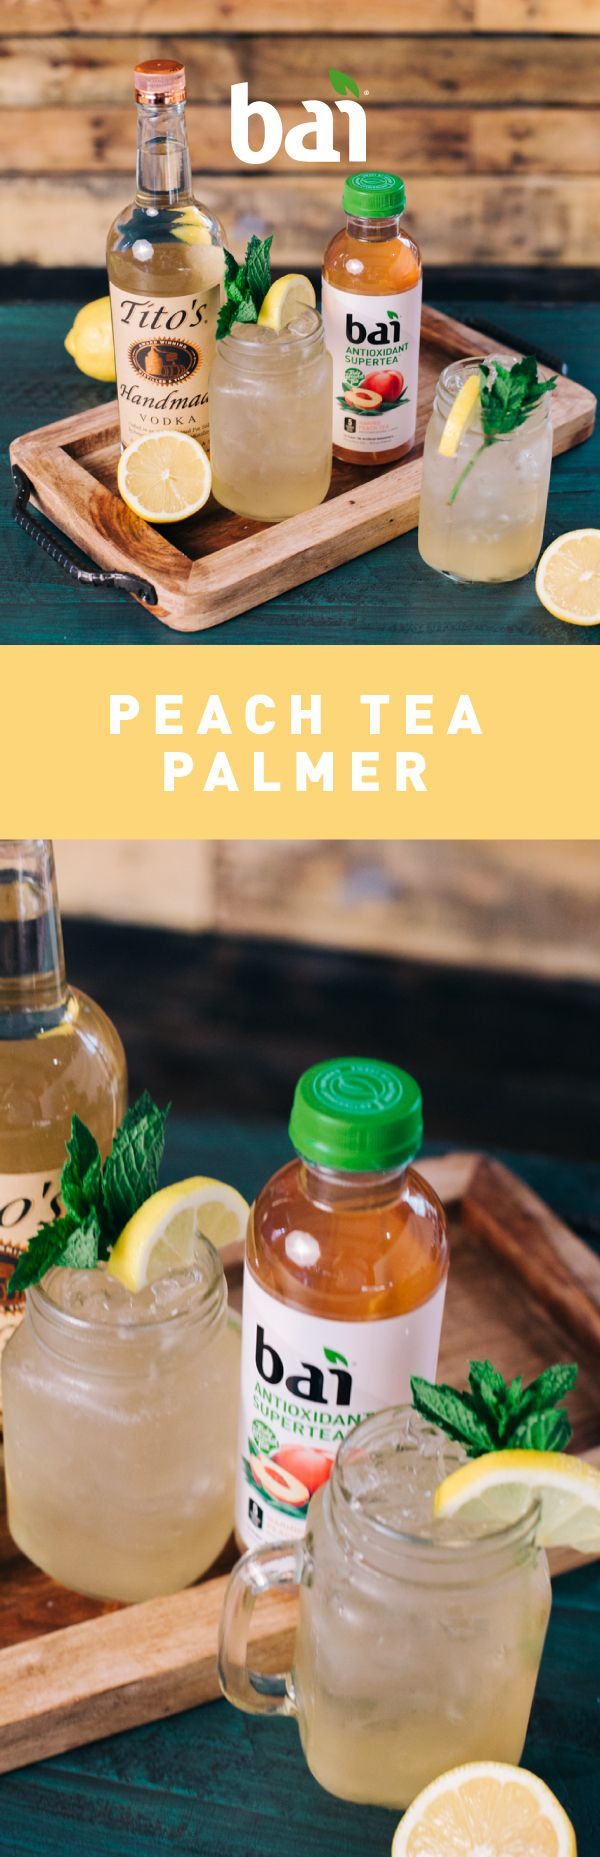 Slip into a Southern state of mind with this Peach Tea Palmer. Featuring Bai Narino Peach Tea, a refreshing pick-me-up with only 5 calories, 1 gram of sugar and no artificial sweeteners. Please drink responsibly. Must be 21+.